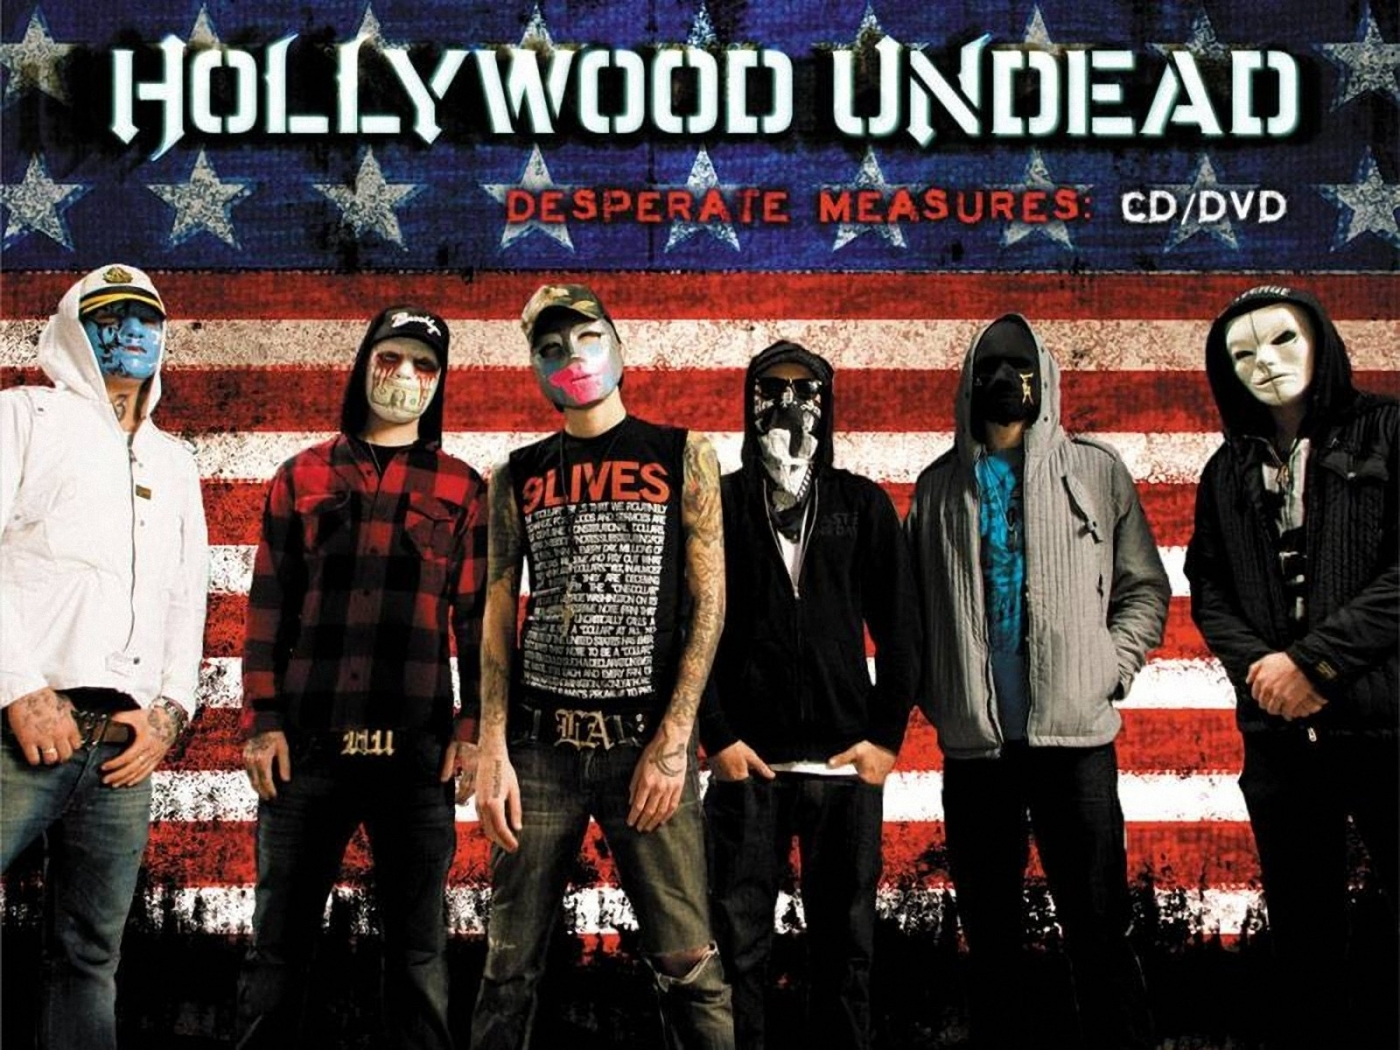 Hollywood Undead 1400x1050 Wallpapers 1400x1050 Wallpapers Pictures 1400x1050